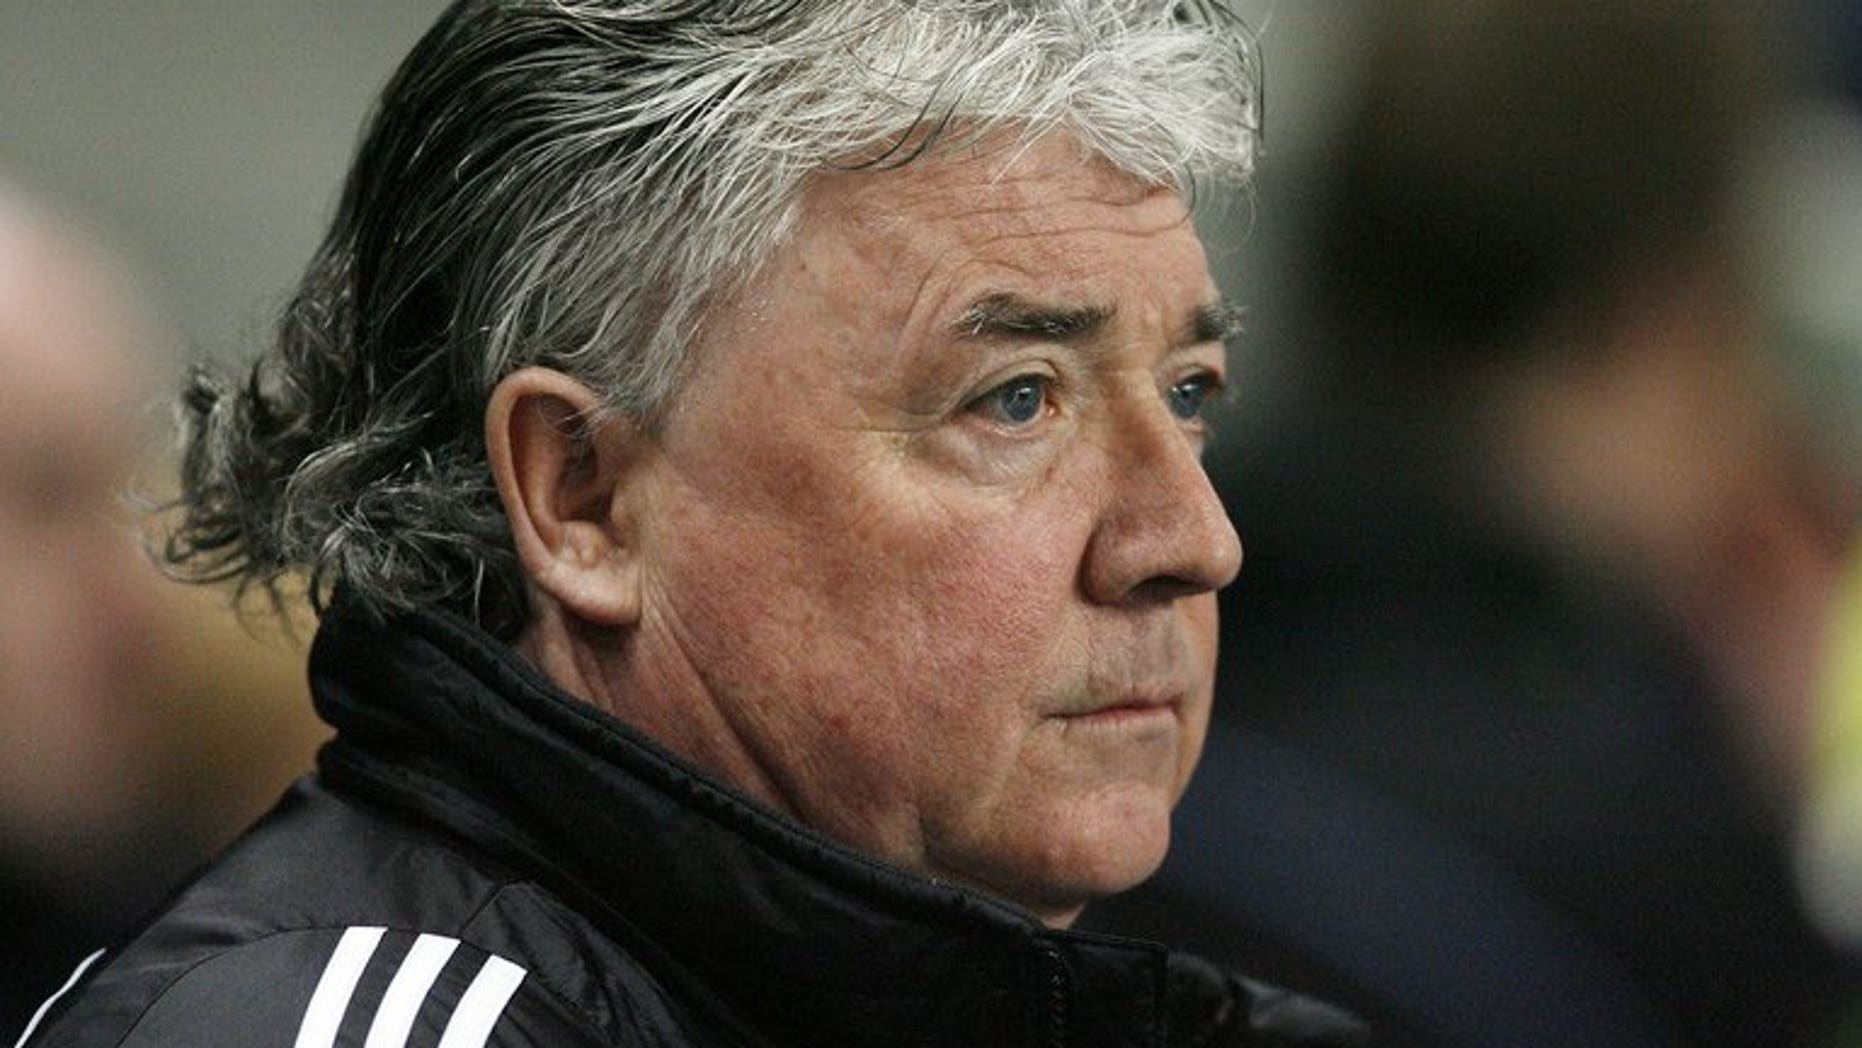 Newcastle manager Joe Kinnear watches before their Premier League football match against Manchester City at the City Of Manchester Stadium in Manchester on January 28, 2009. Kinnear insisted he will eventually deliver the signings required to lift the mood at the troubled Premier League club.